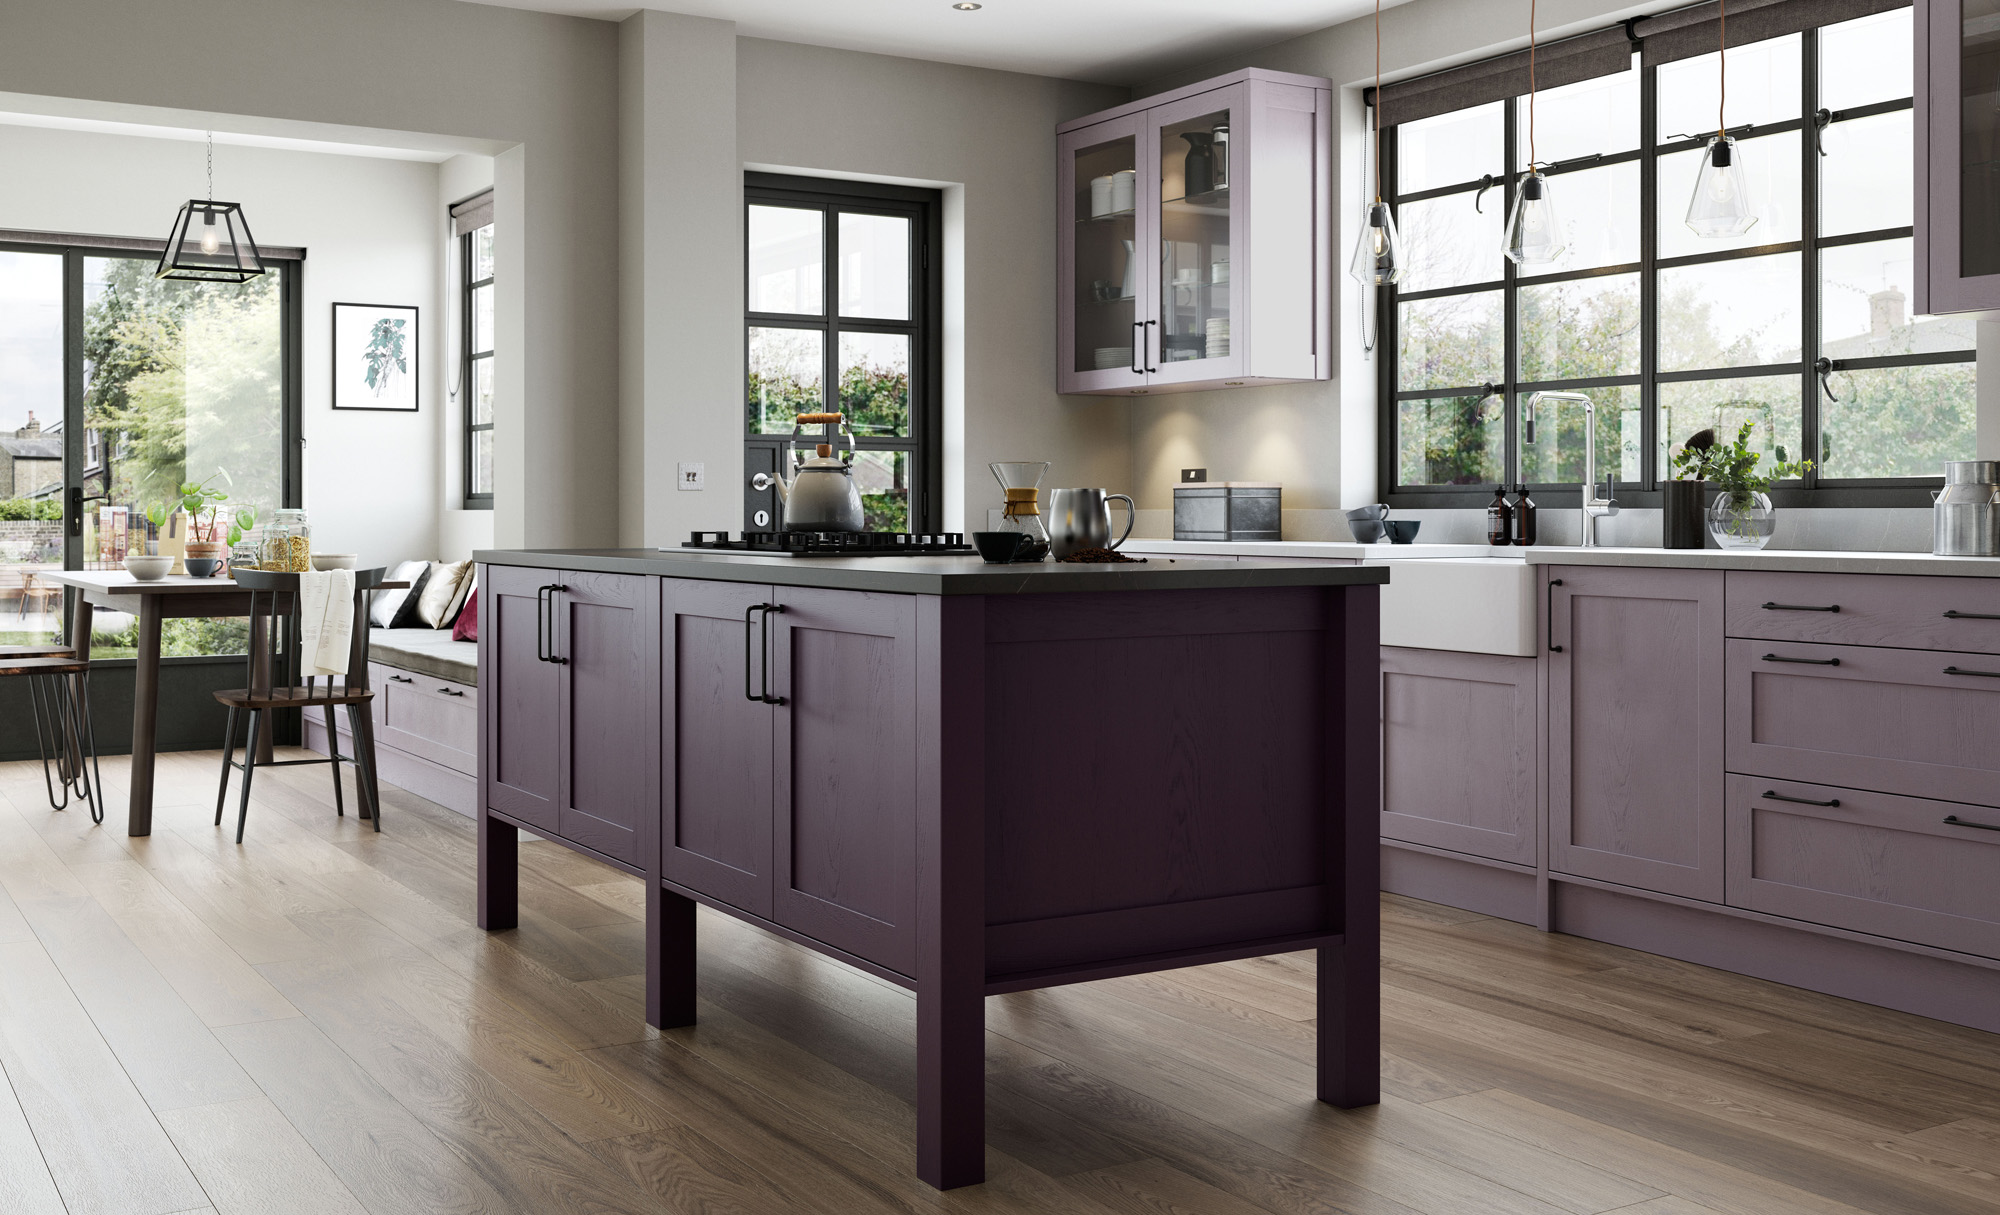 Modern Contemporary Deep Heather Lavender and Grey Kitchen image